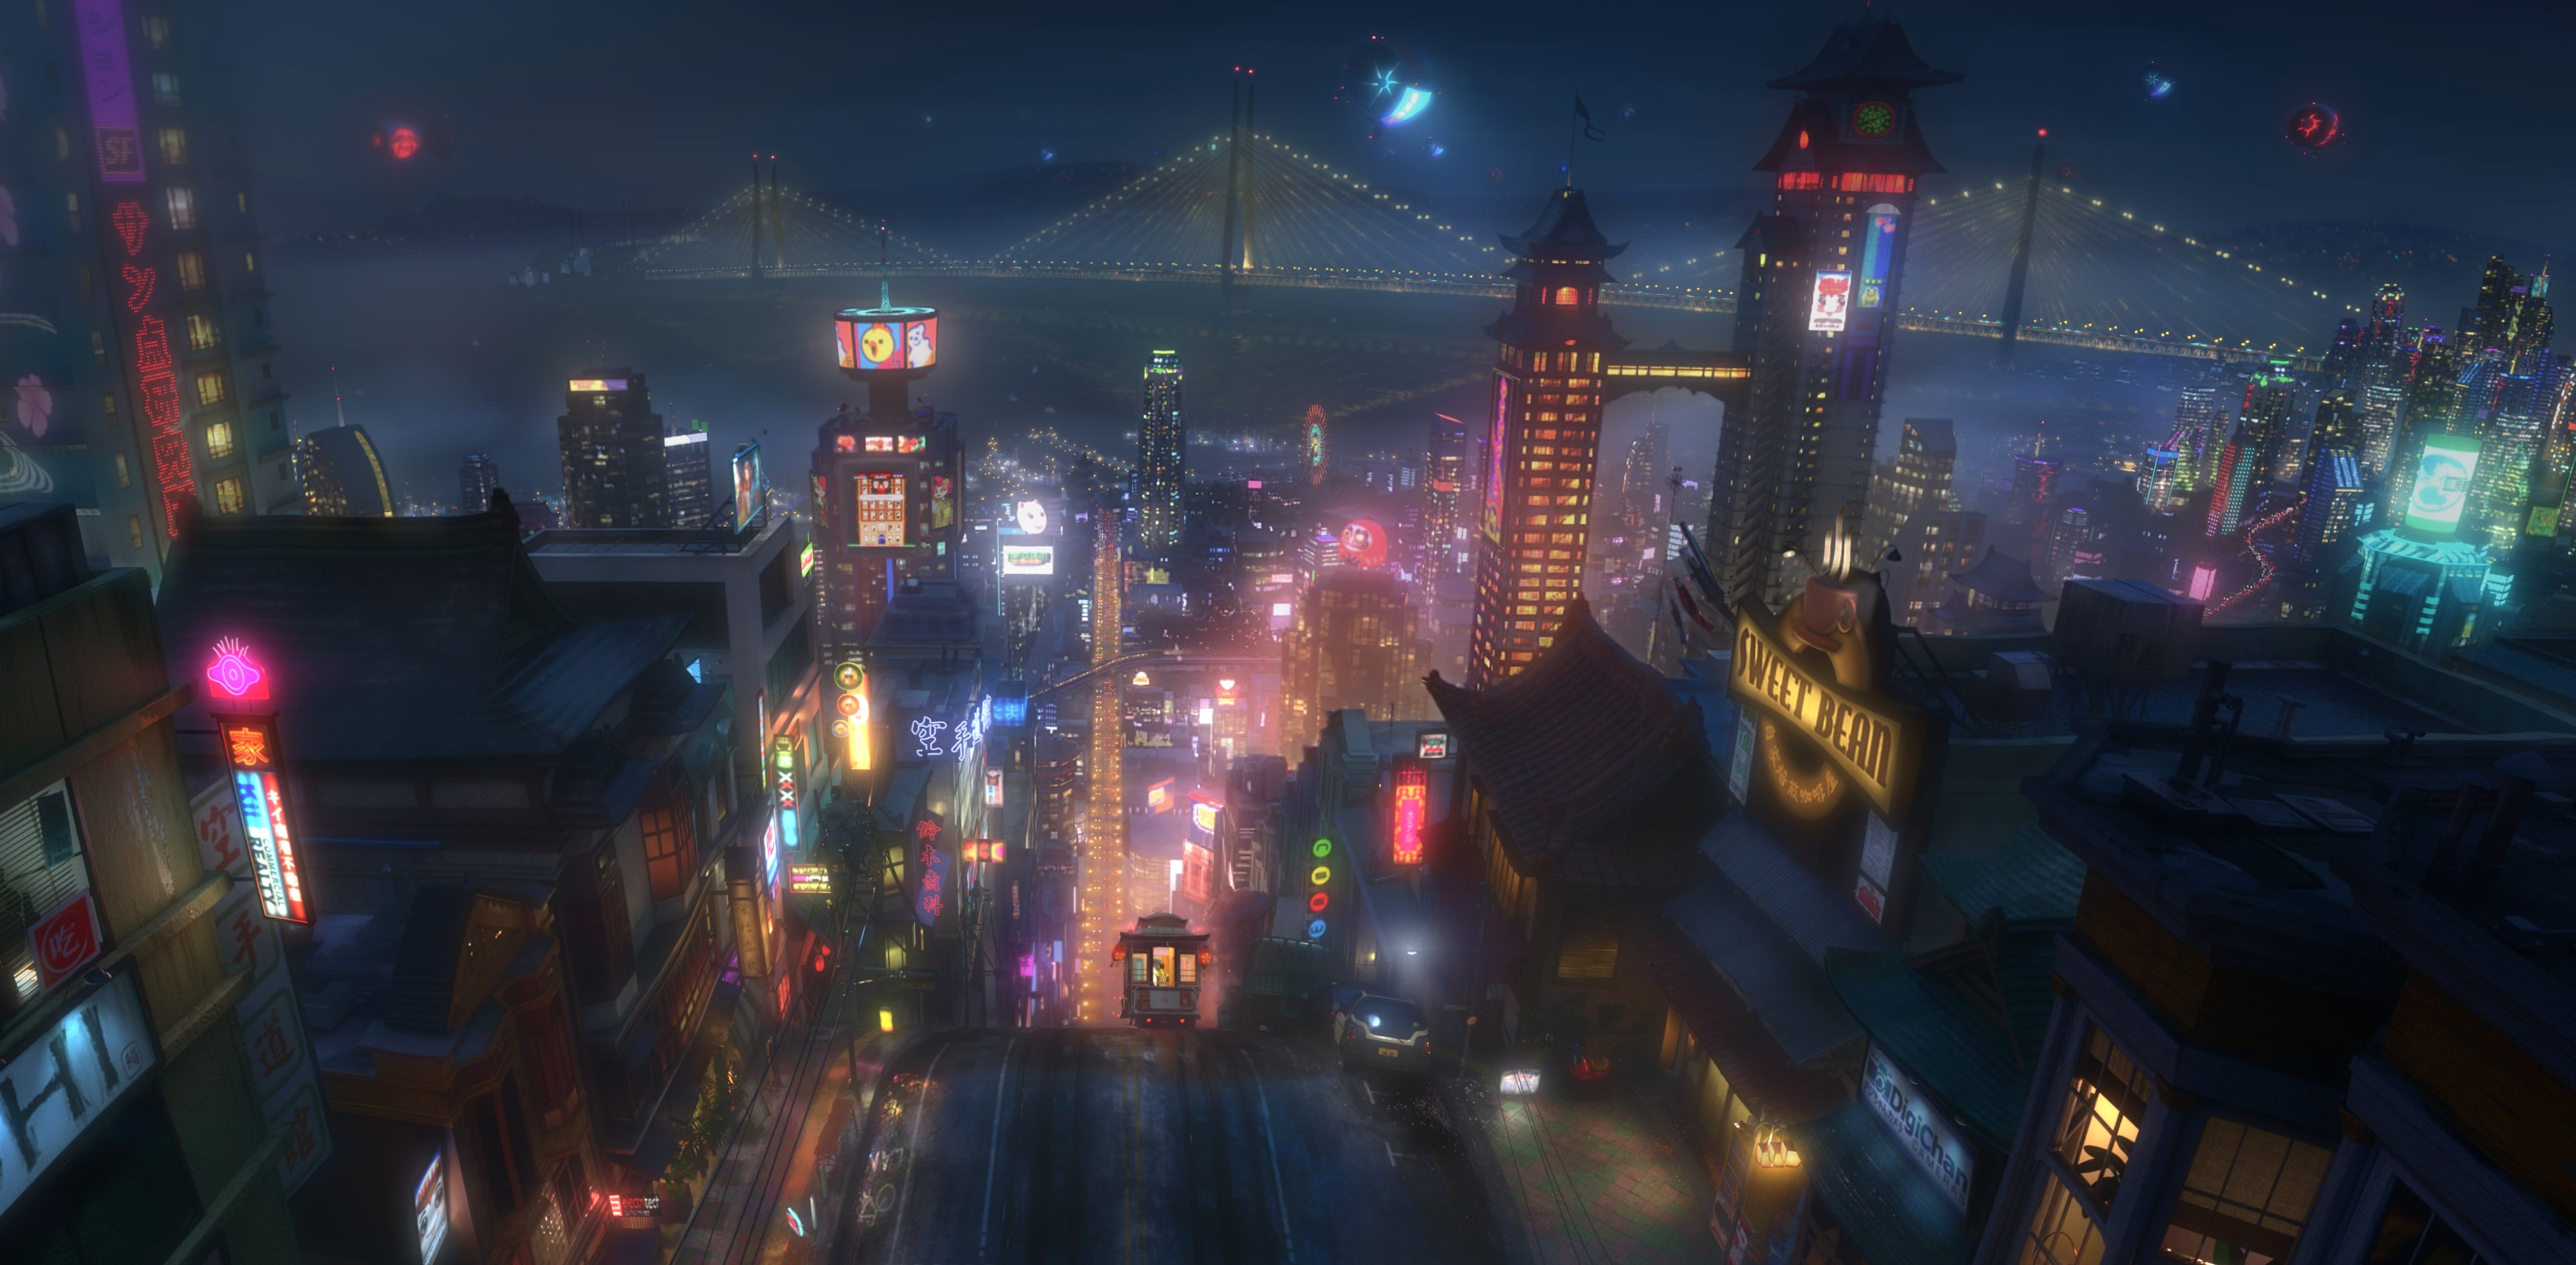 A Tour Of 'San Fransokyo', The Hybrid City Disney Built For Big Hero 6